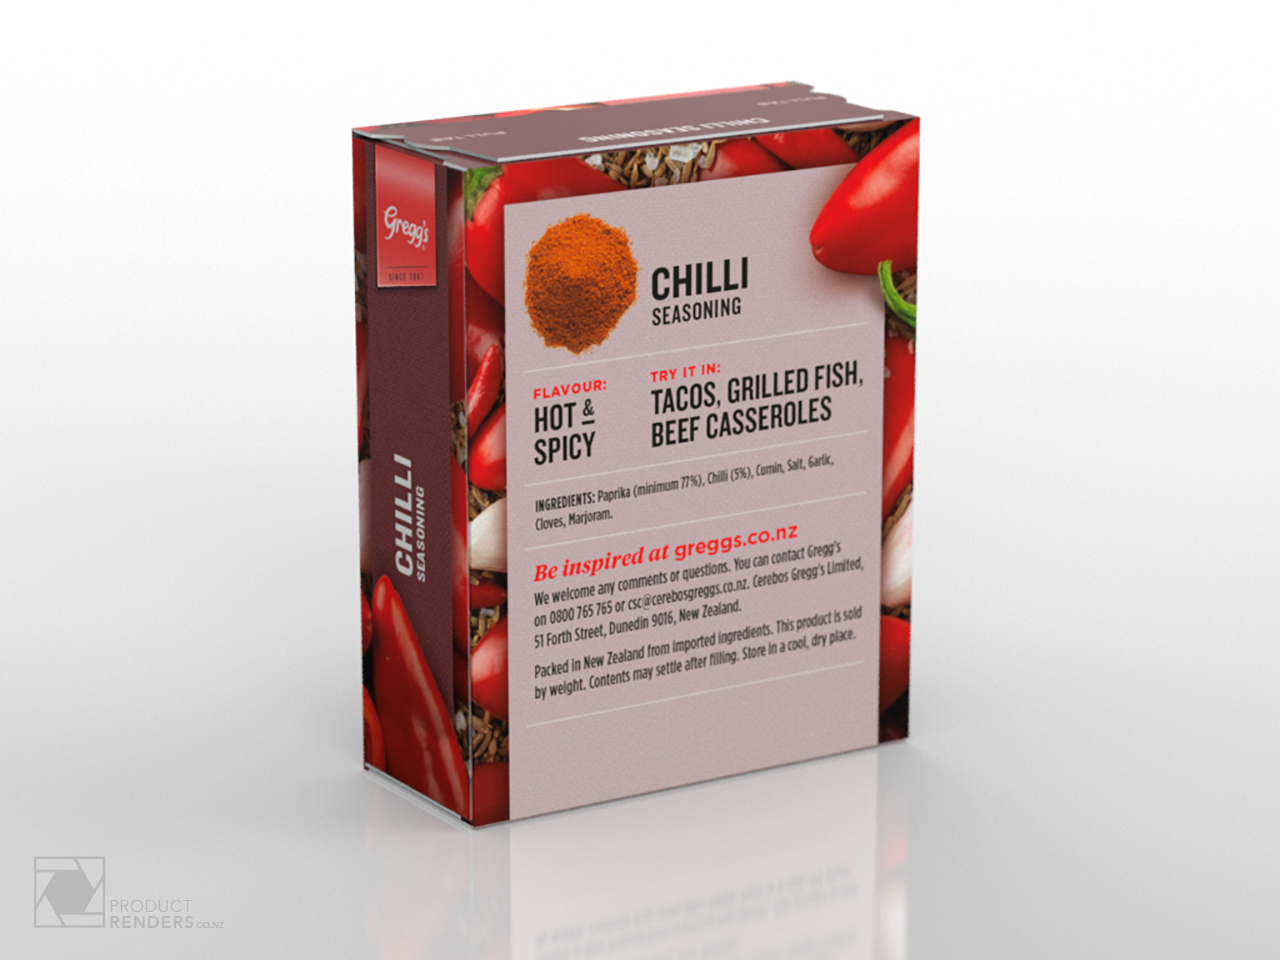 3D packaging render of Greggs' Chilli Seasoning from their herbs & spices range